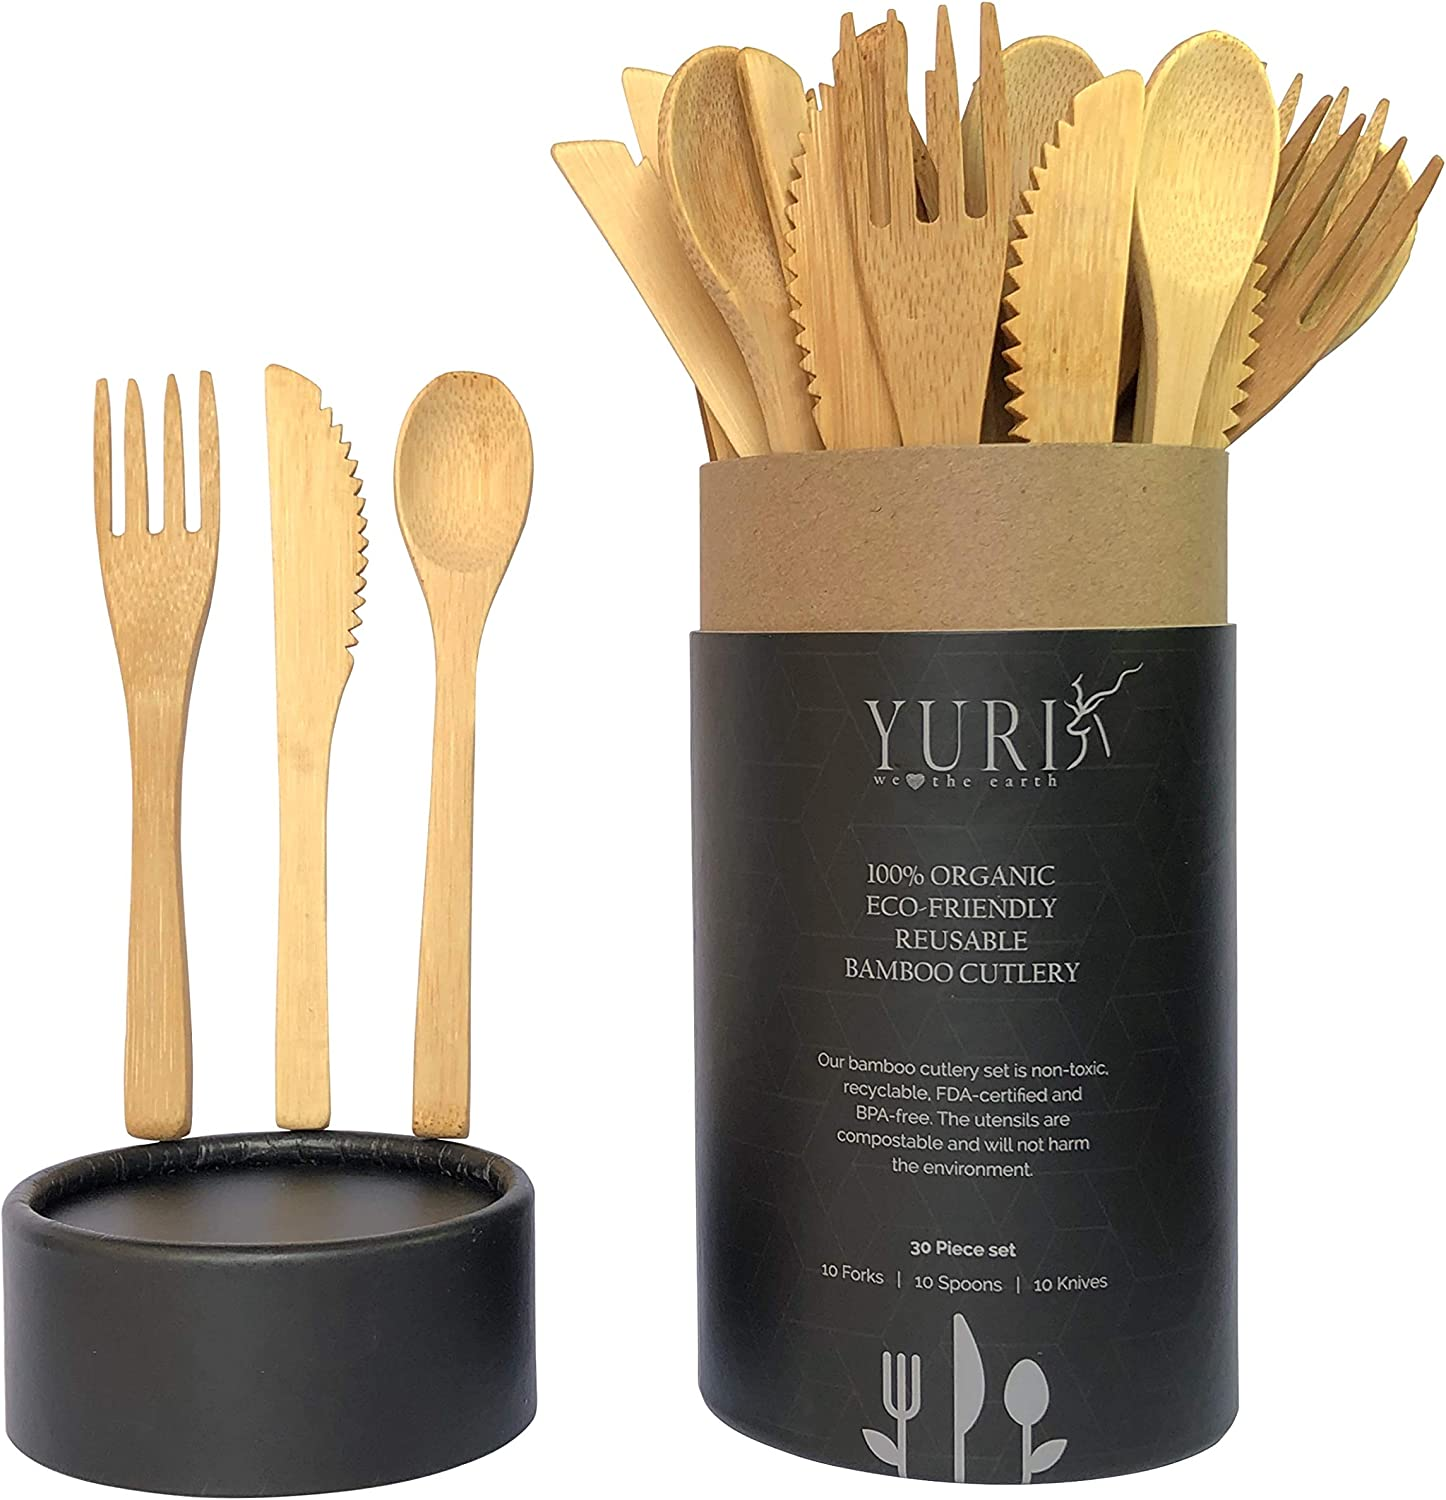 Amazon.com: 30-Piece Premium Quality Reusable Bamboo Utensils, Eco-Friendly  Travel Utensils in Portable Case, Compostable Picnic Cutlery, Camping  Utensil Set: Kitchen & Dining